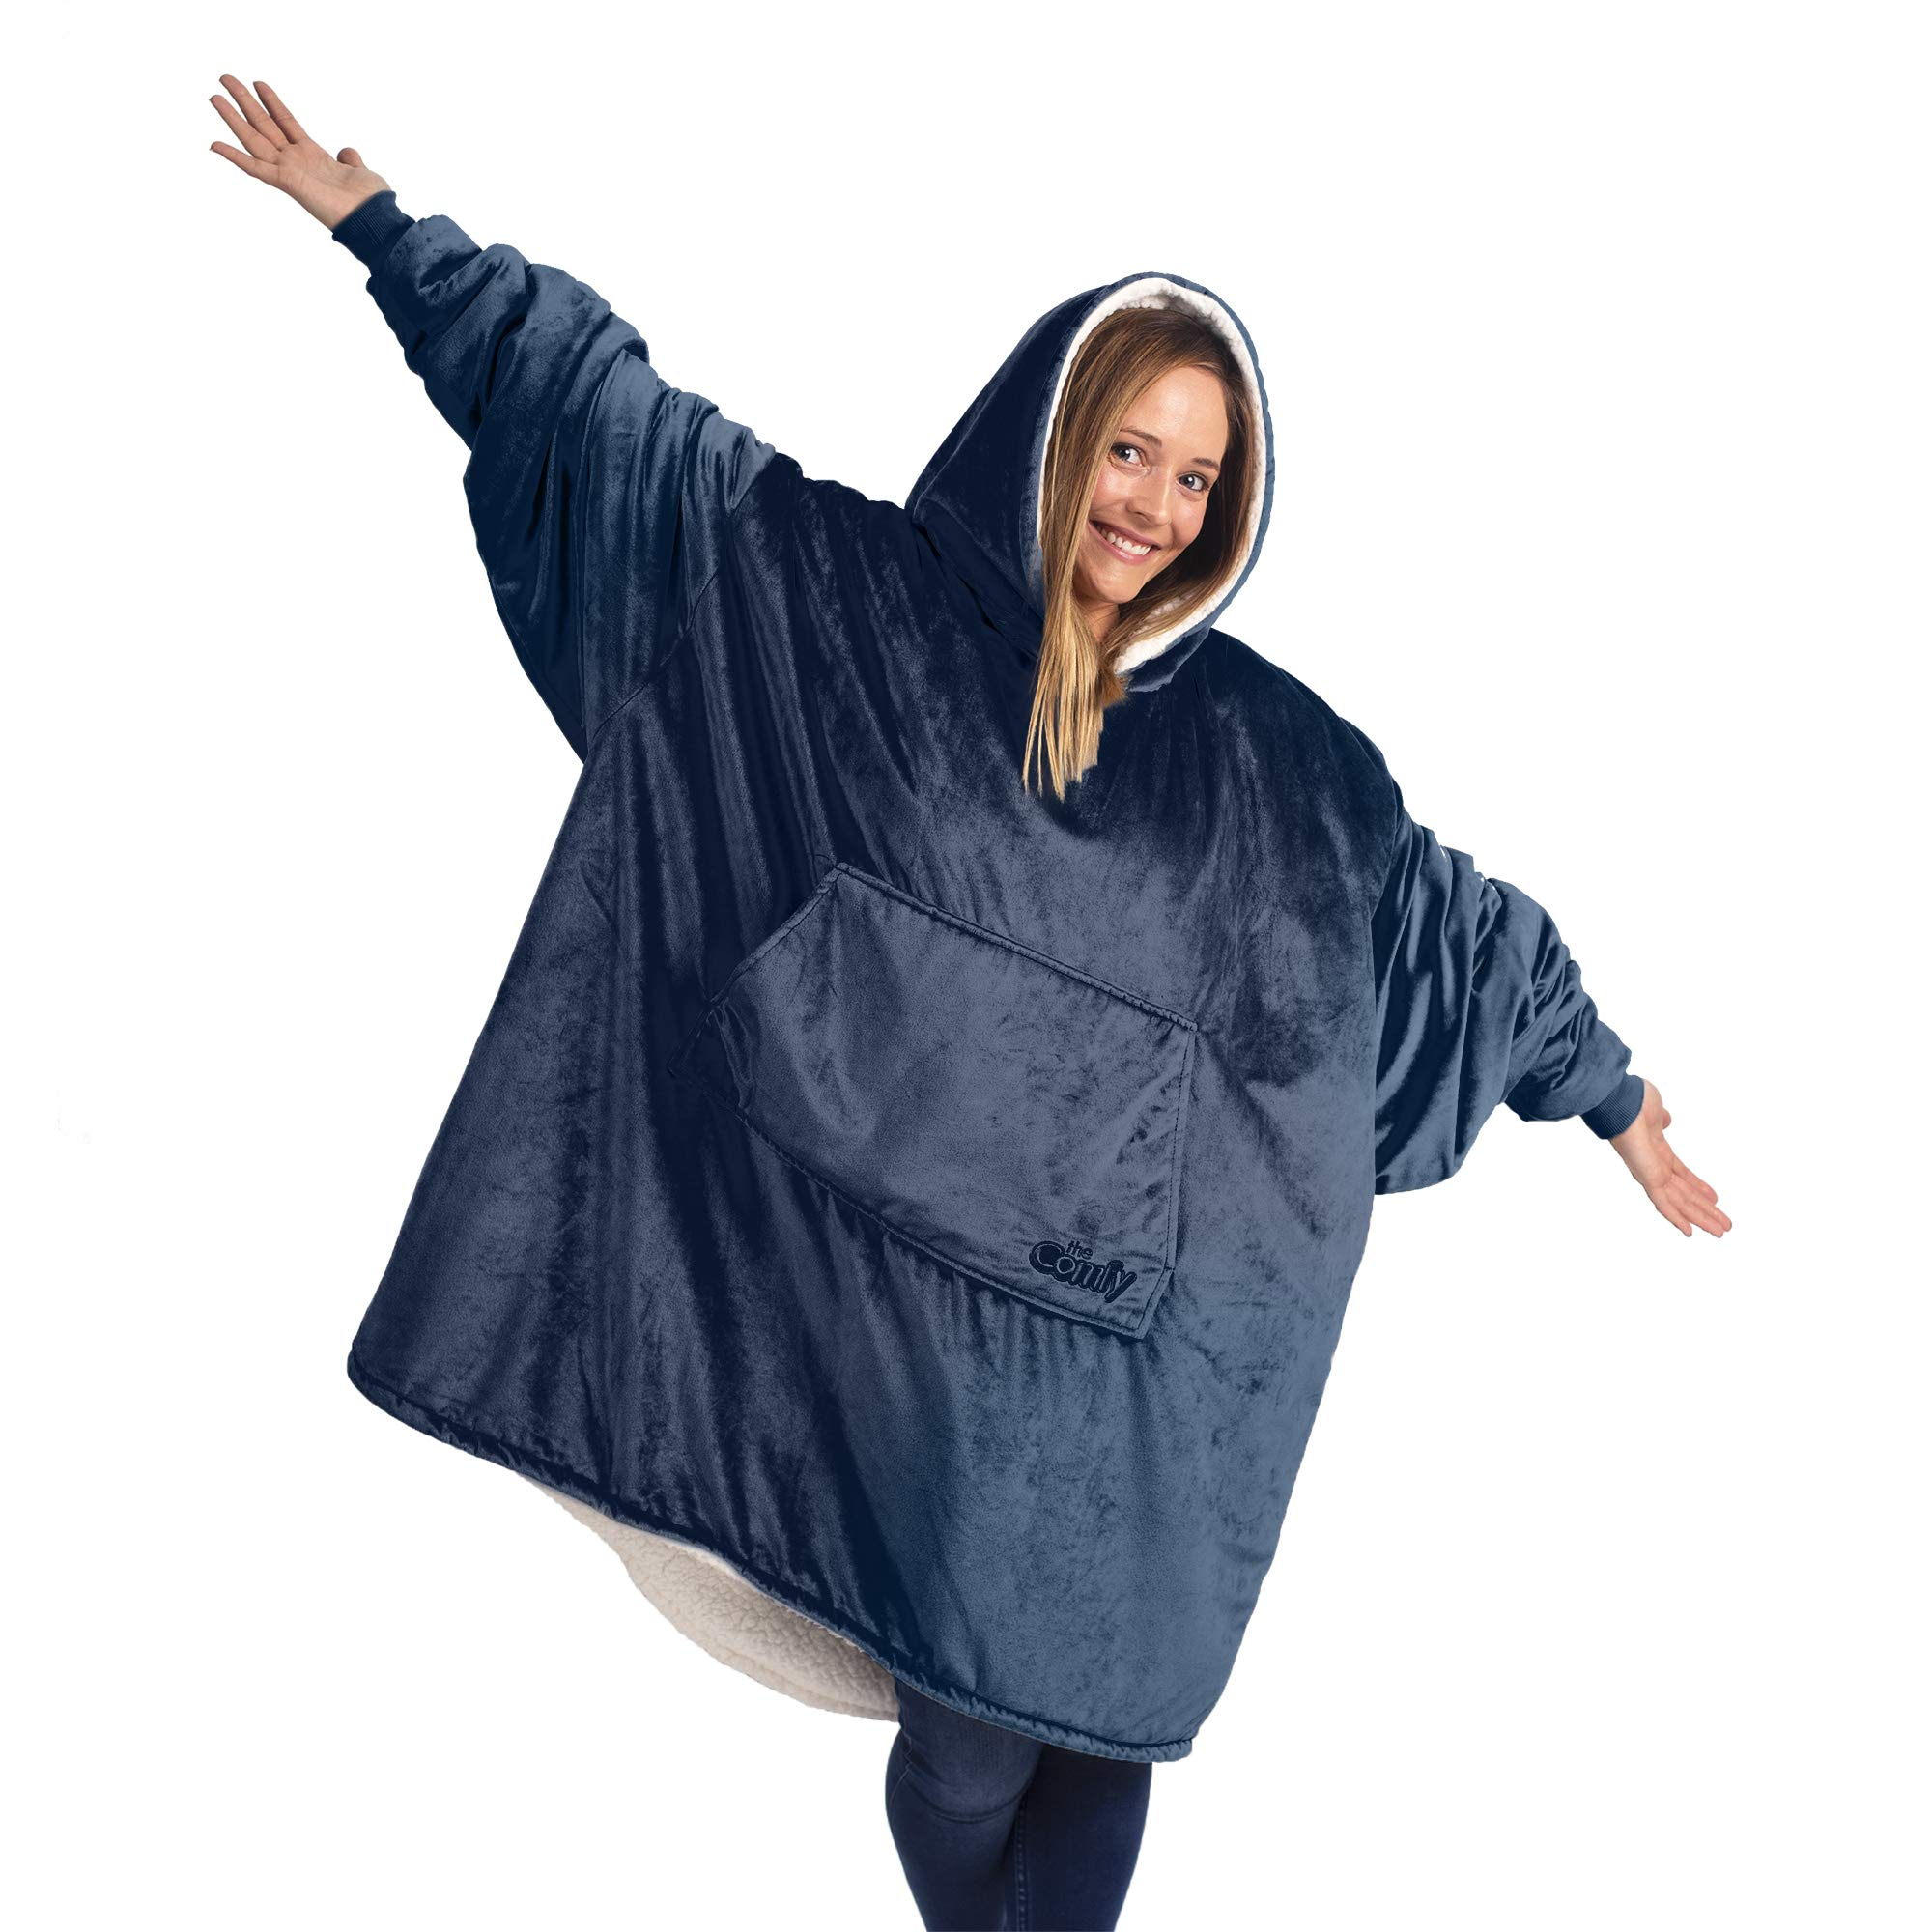 THE COMFY: Original Blanket Sweatshirt, Seen on Shark Tank, Invented by 2 Brothers, Warm, Soft, Cozy, Wearable Sherpa Hoodie, Multiple Colors, One Size Fits All, Adults, Men, Women, Teens, Friends by THE COMFY